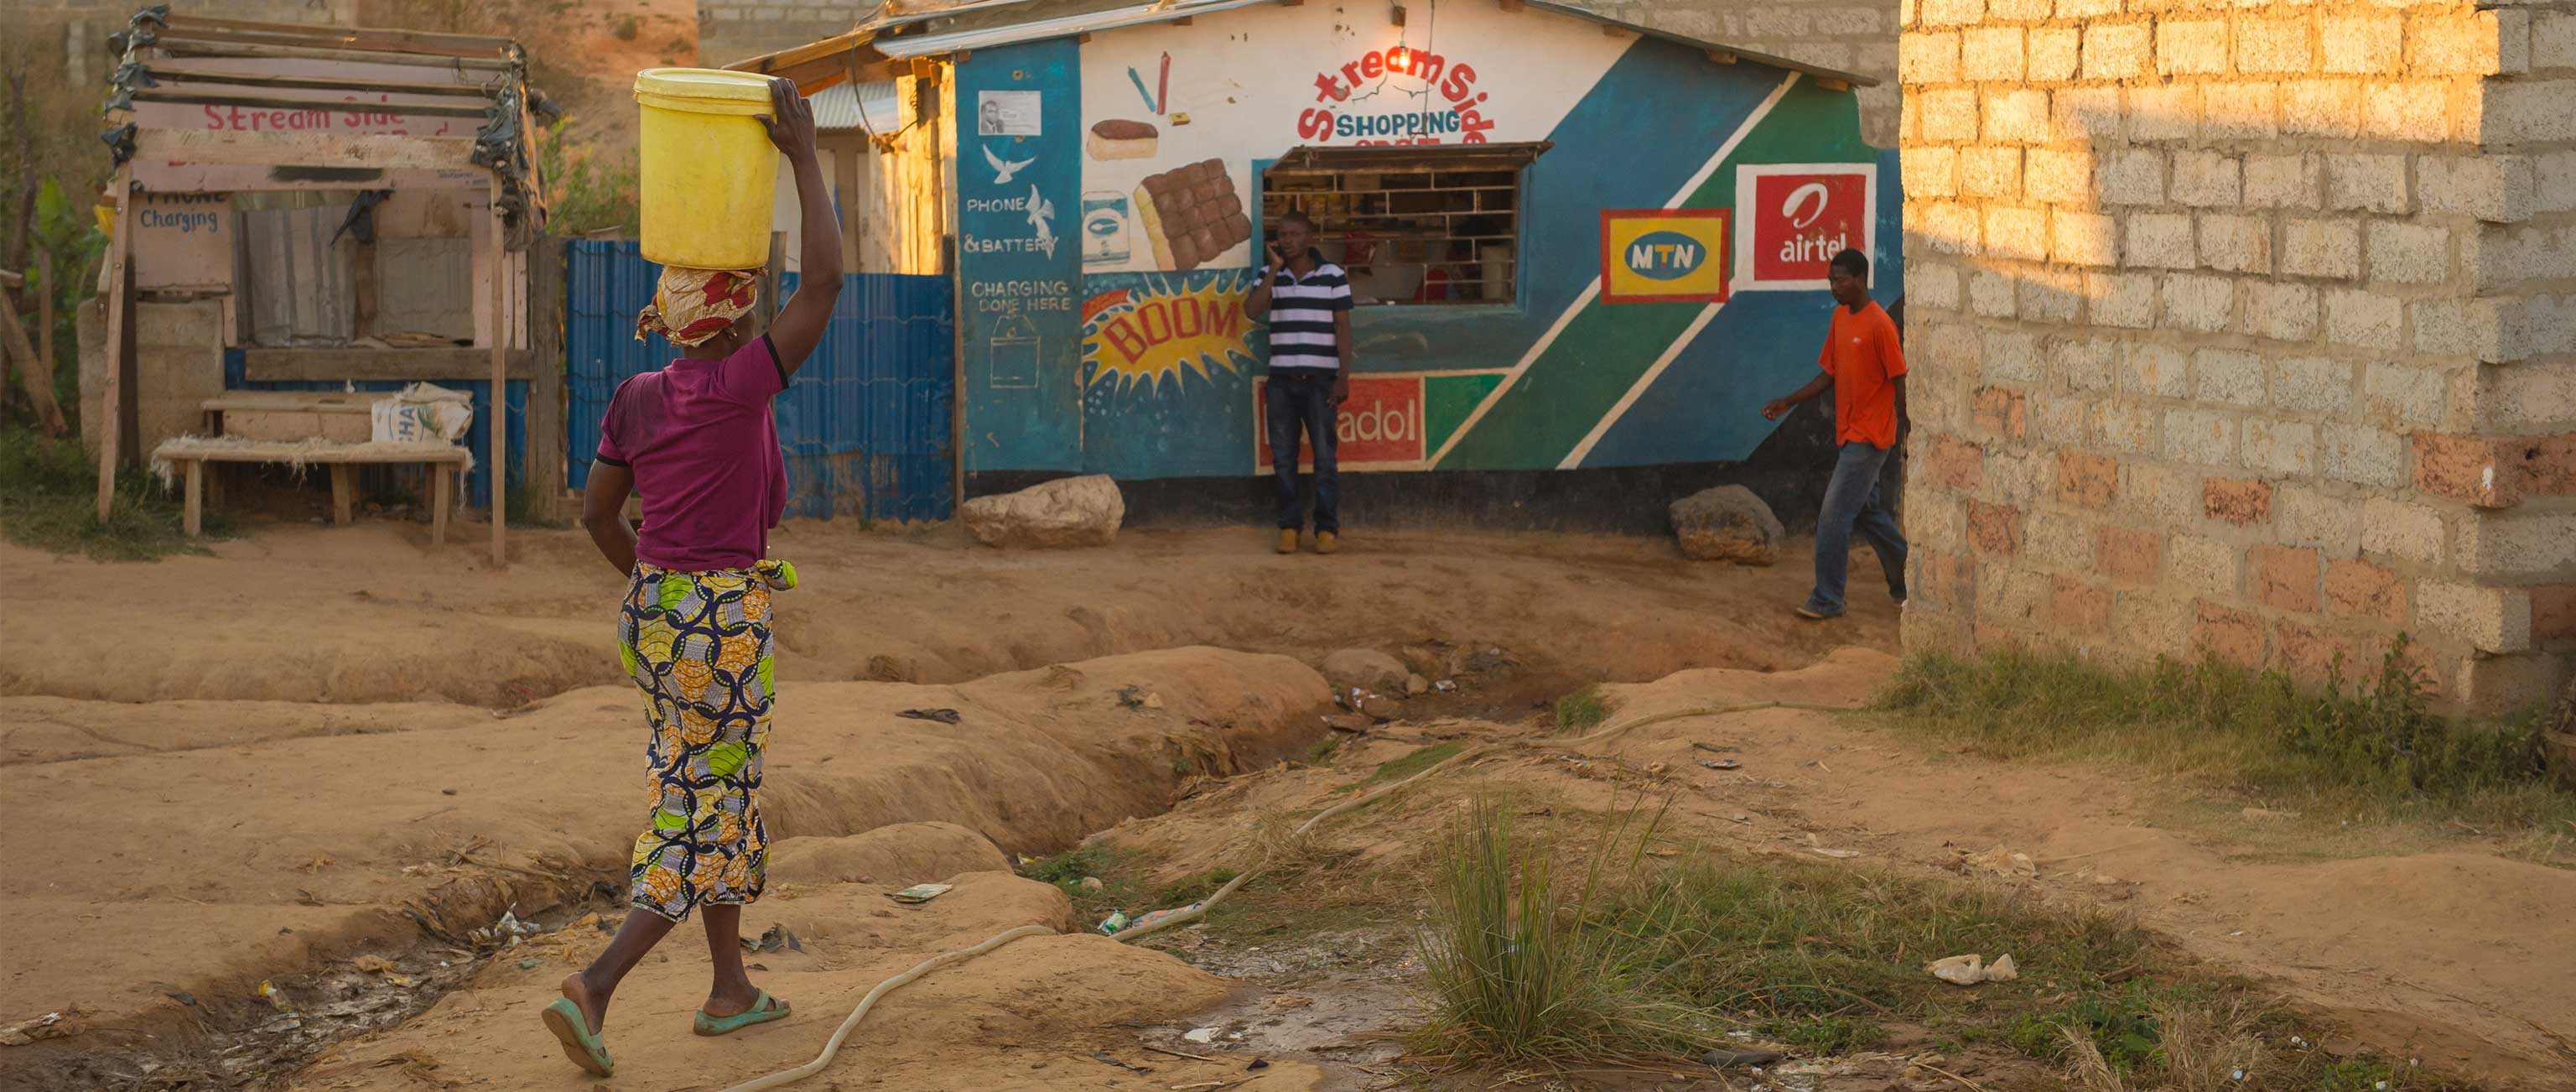 From Direct Action to Advisory Services: A Pathway to Scale for Social Entrepreneurs